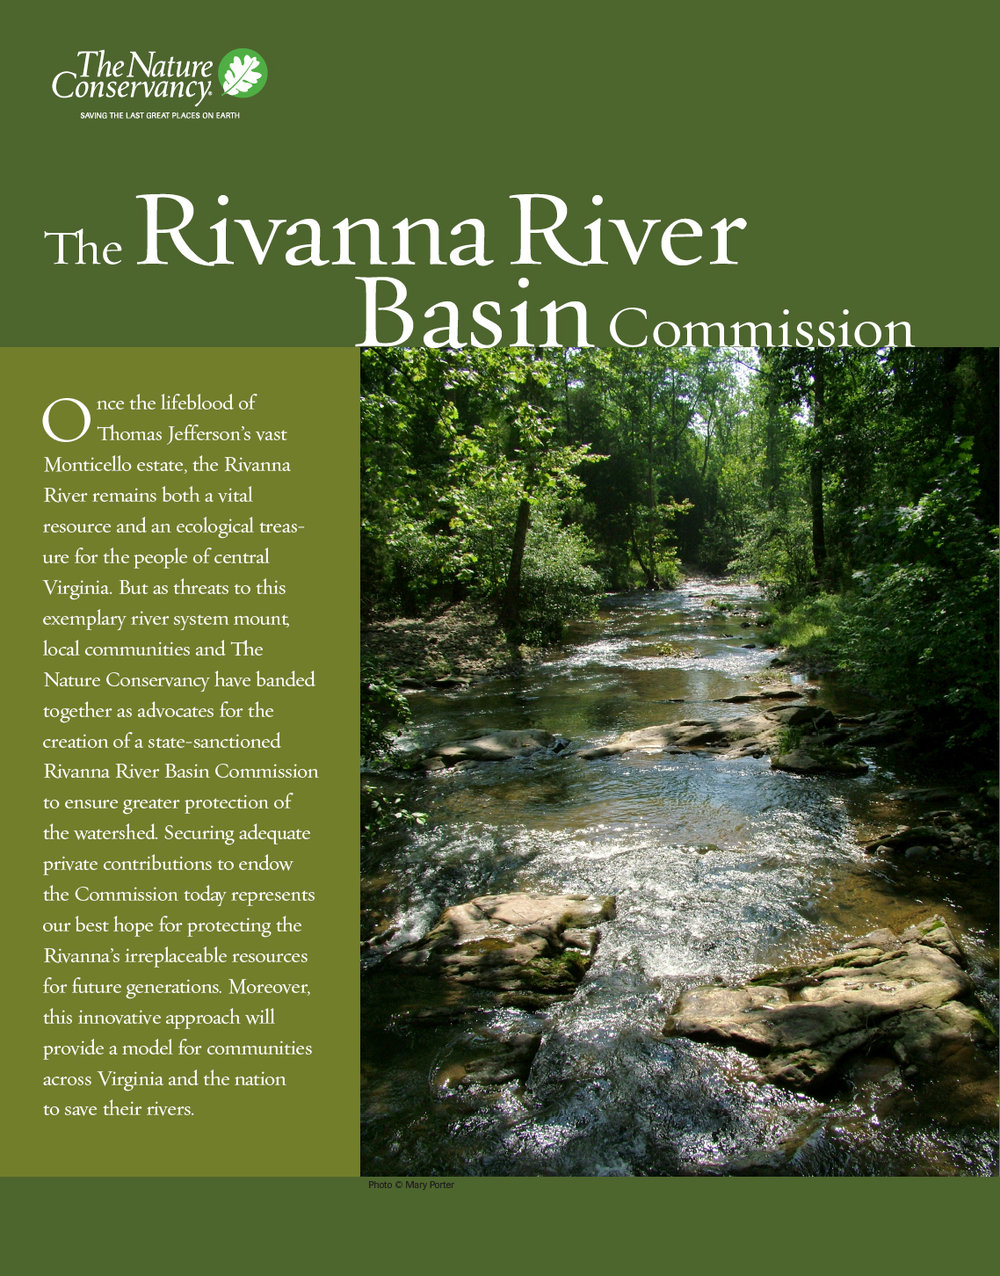 rivanna river cover.jpg